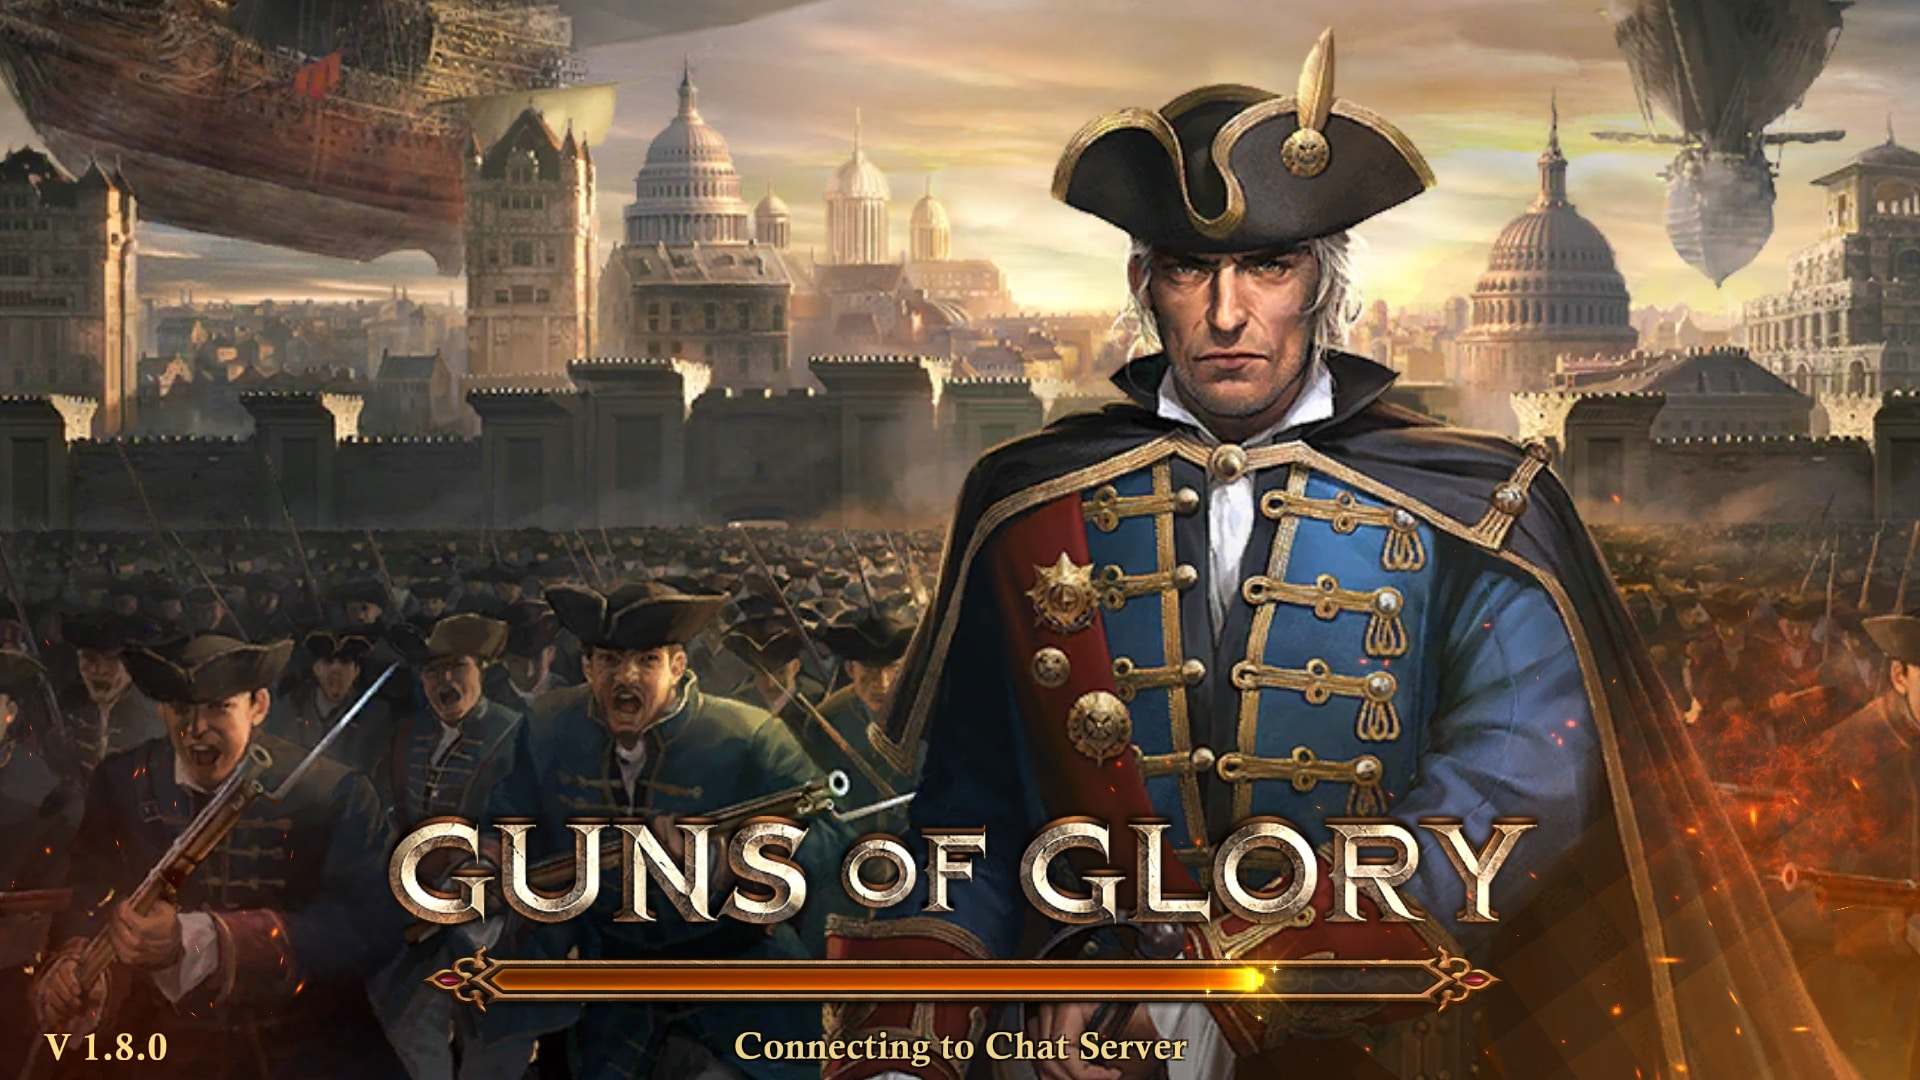 Download Guns of Glory APK- For Android and iOS 20